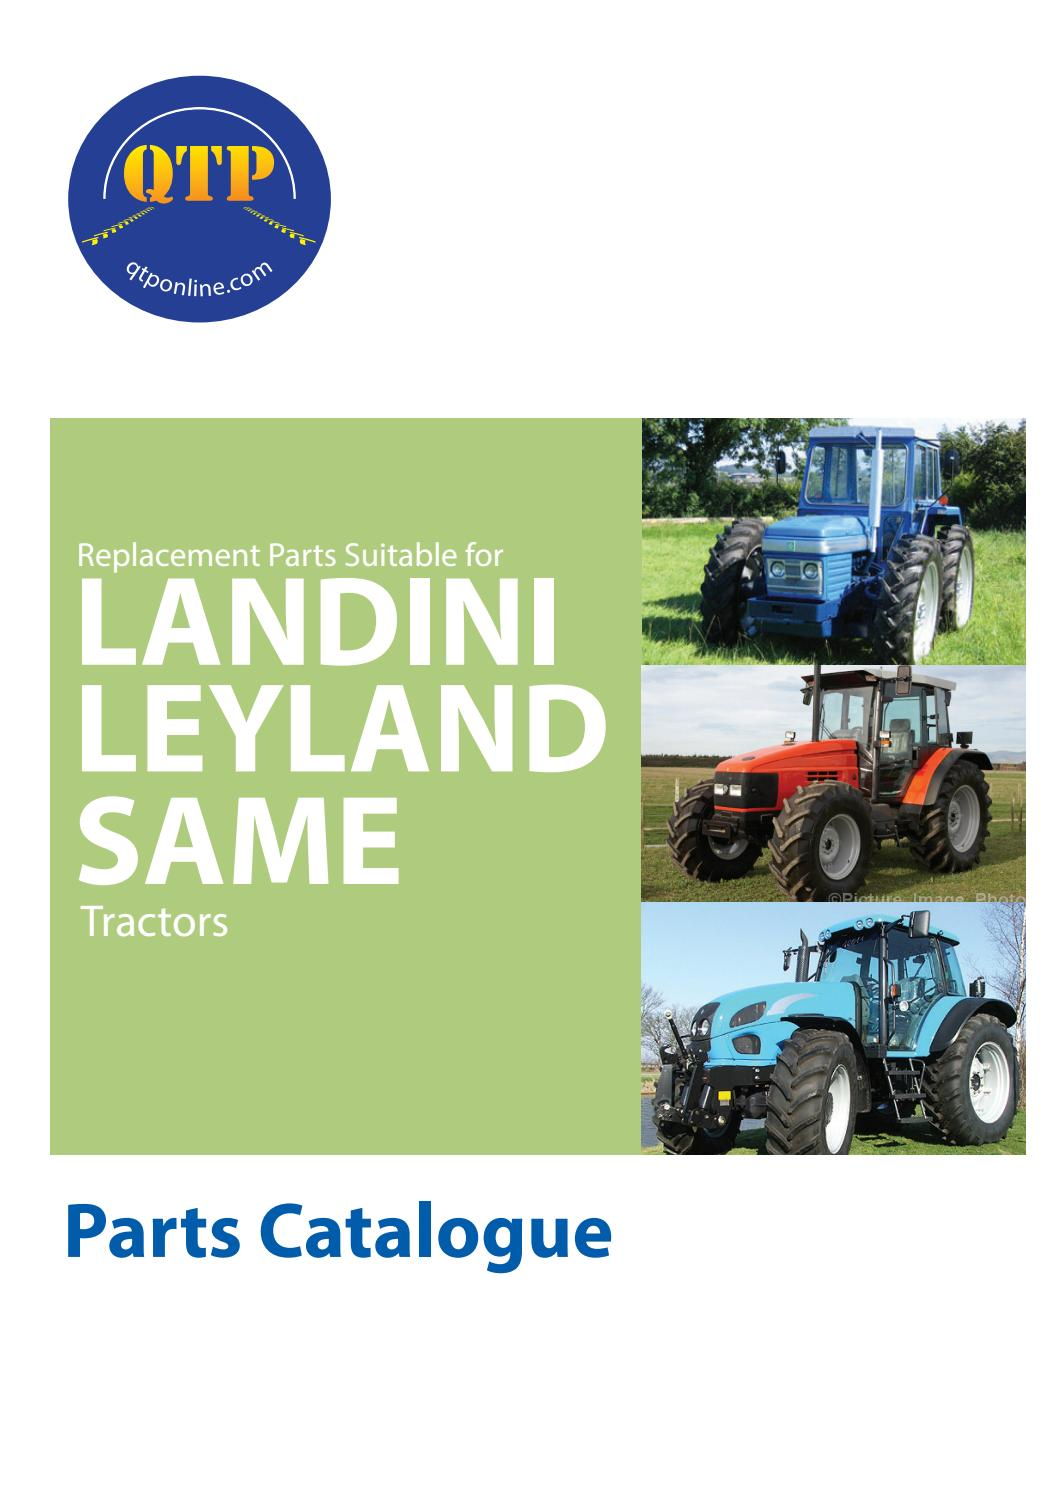 17 Landini Leyland Same by Quality Tractor Parts - issuu